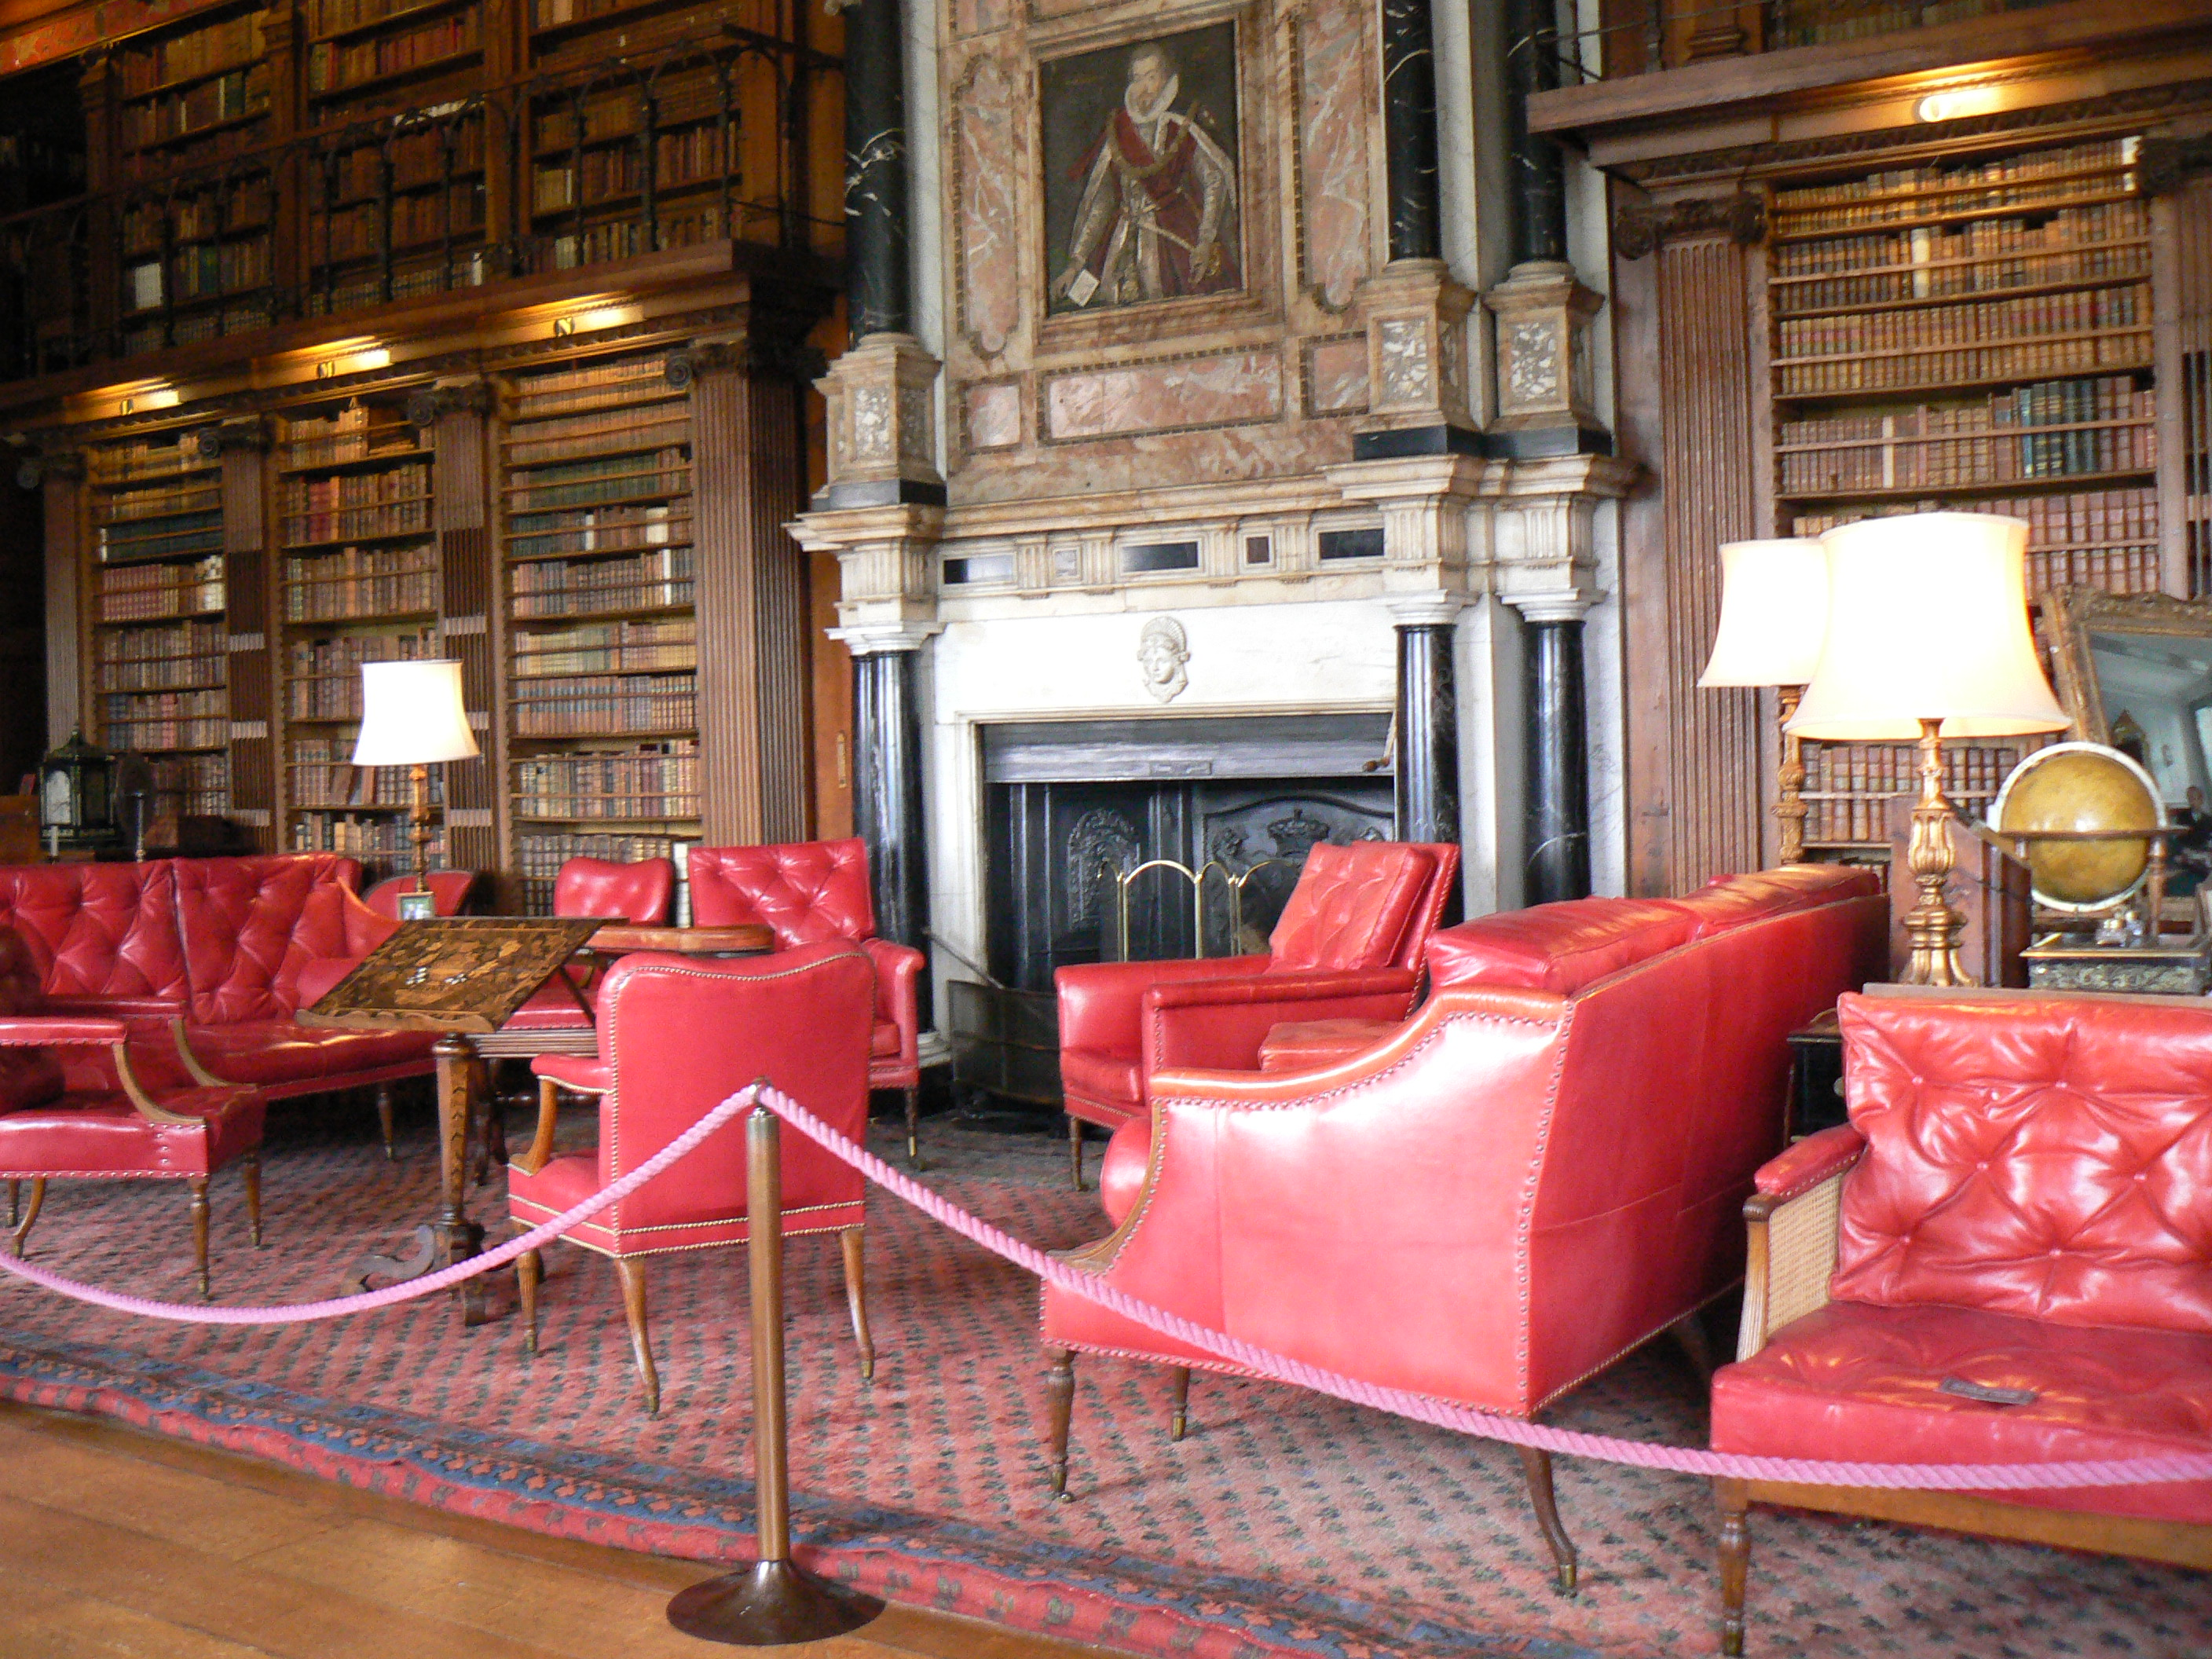 File:Hatfield House Library 8453196813